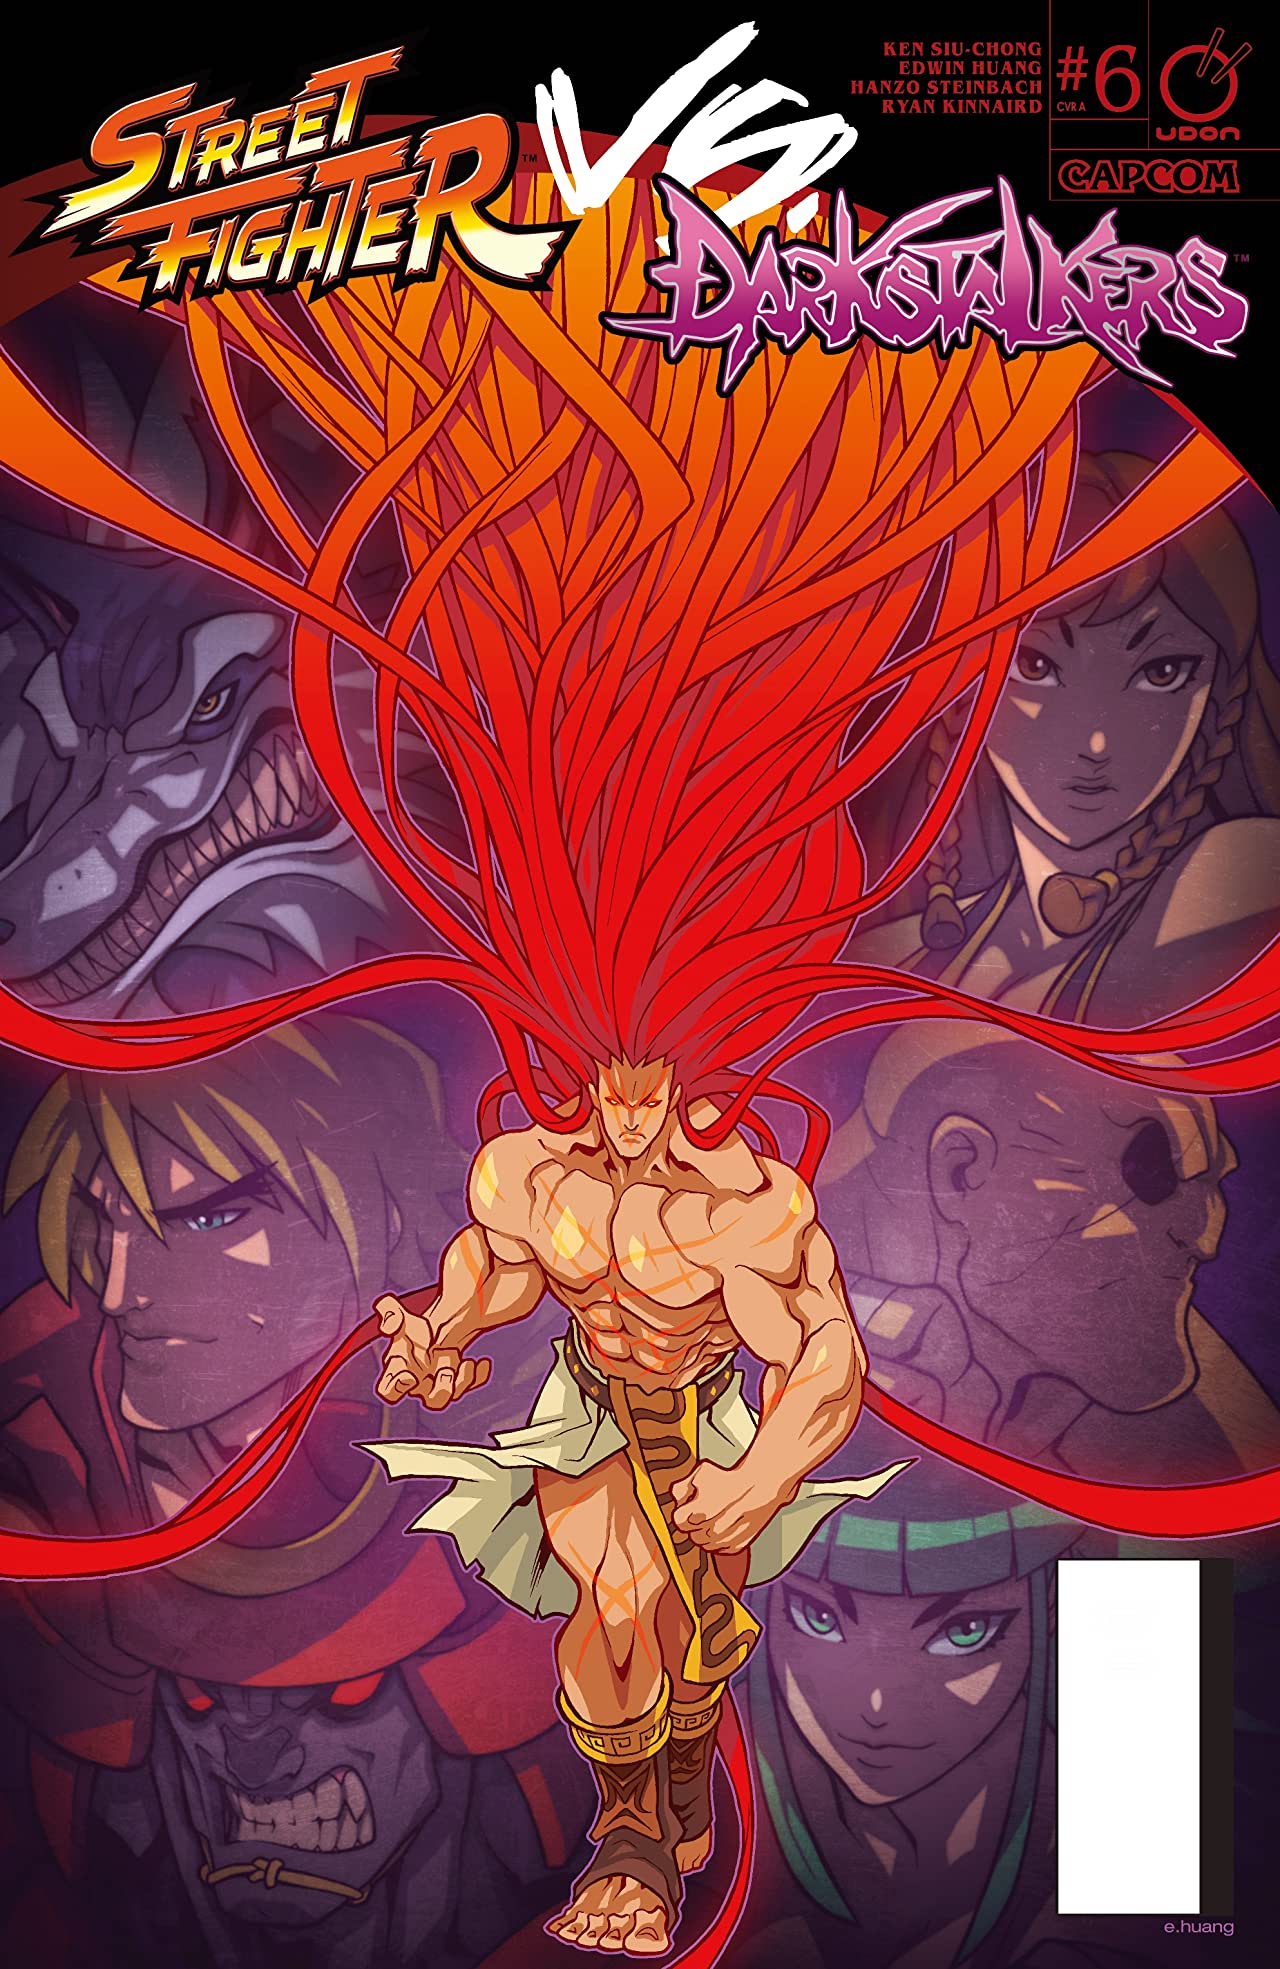 Street Fighter VS Darkstalkers #6 (of 8)